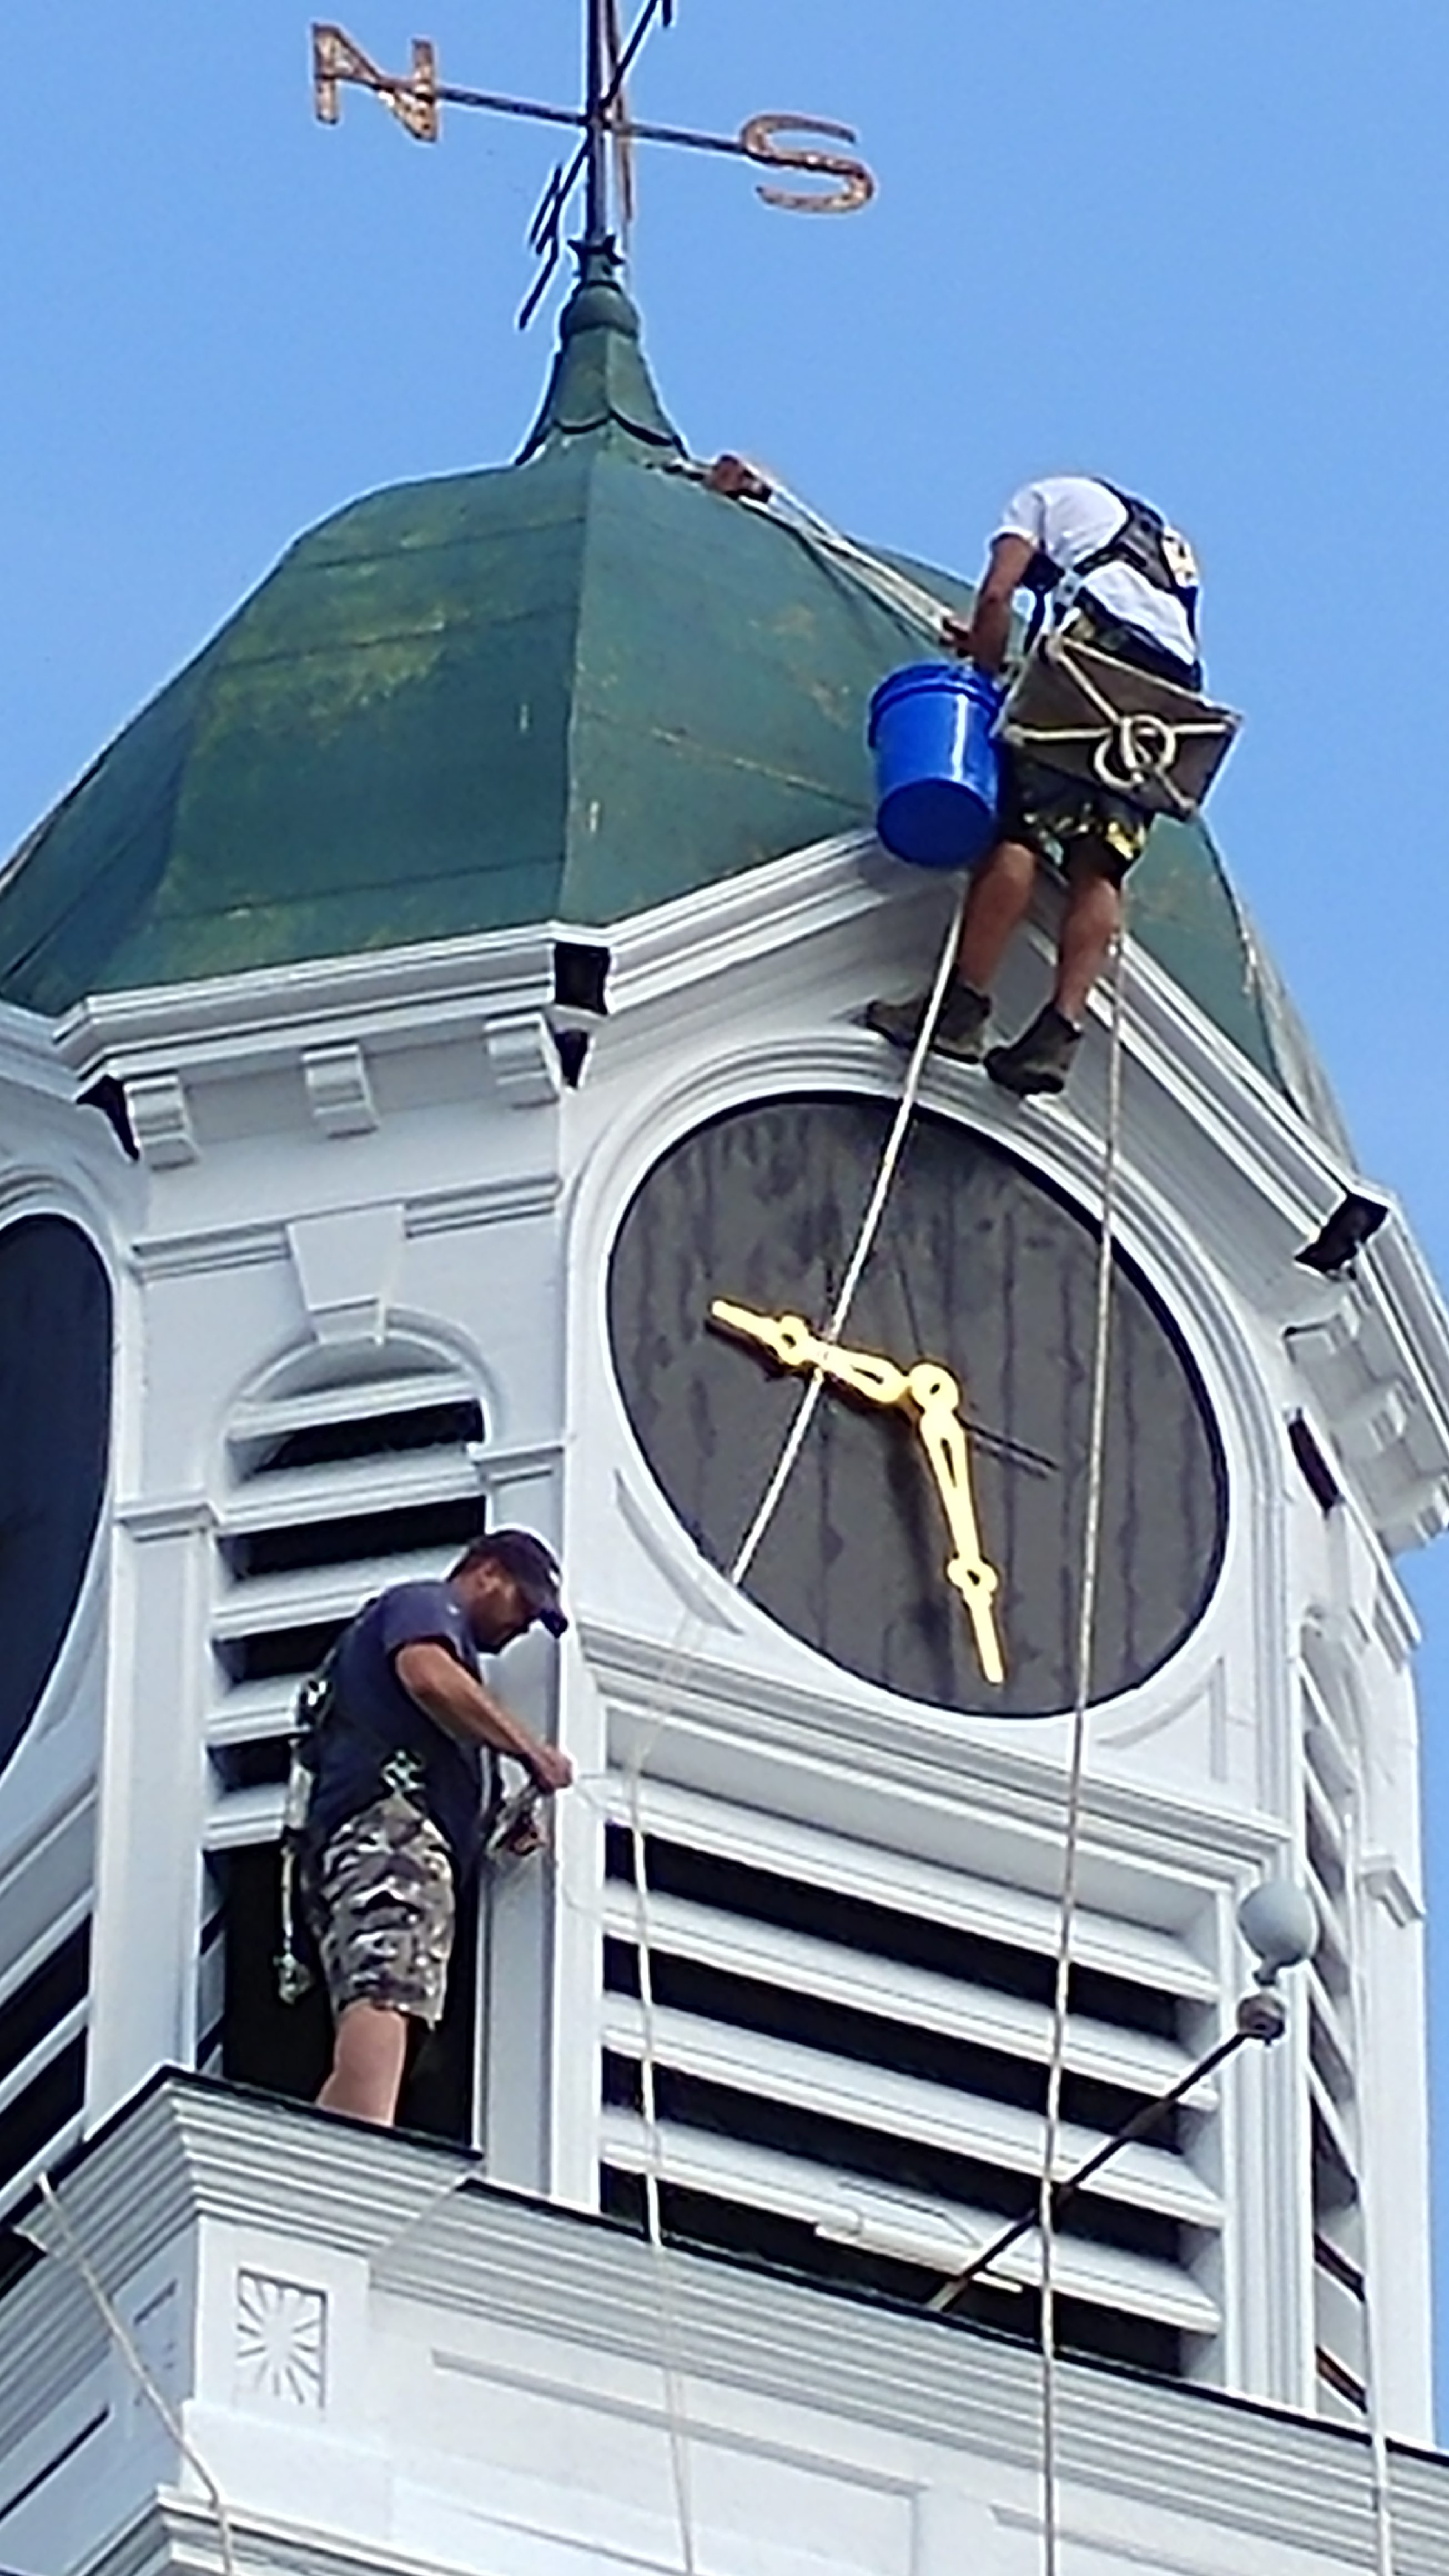 Courthouse project renovating clock tower in Farmington